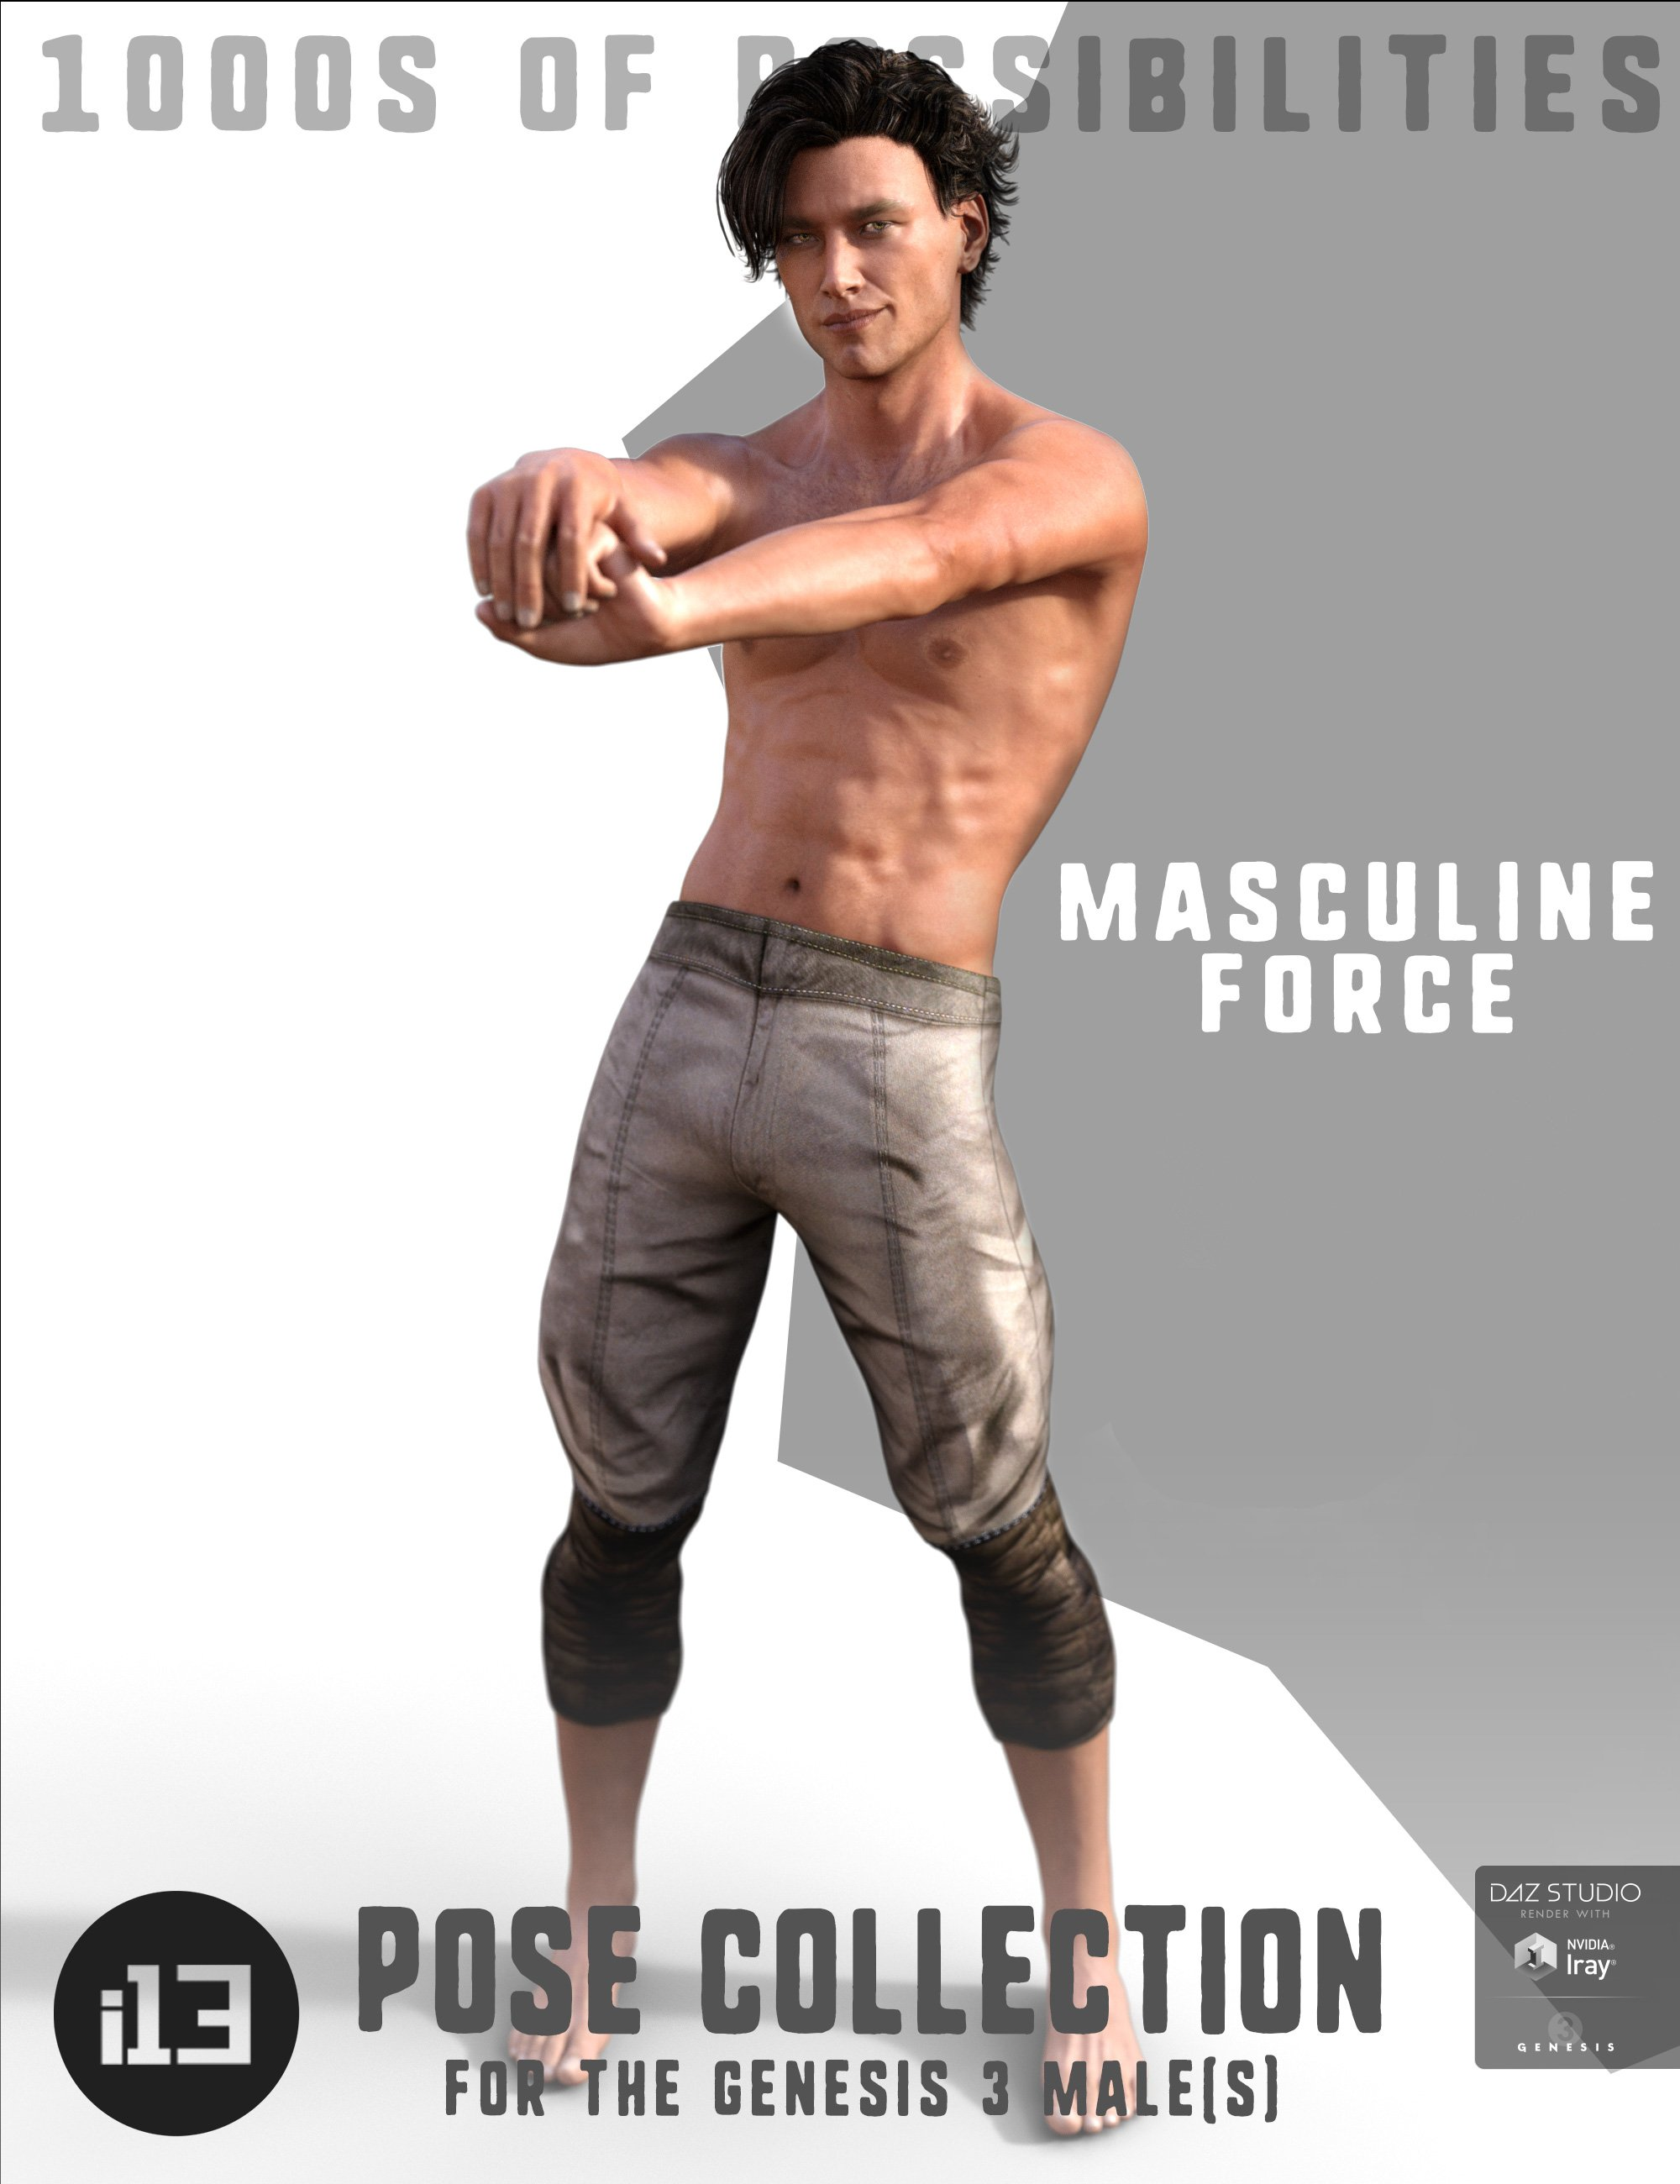 i13 Masculine Force for the Genesis 3 Male(s) by: ironman13, 3D Models by Daz 3D